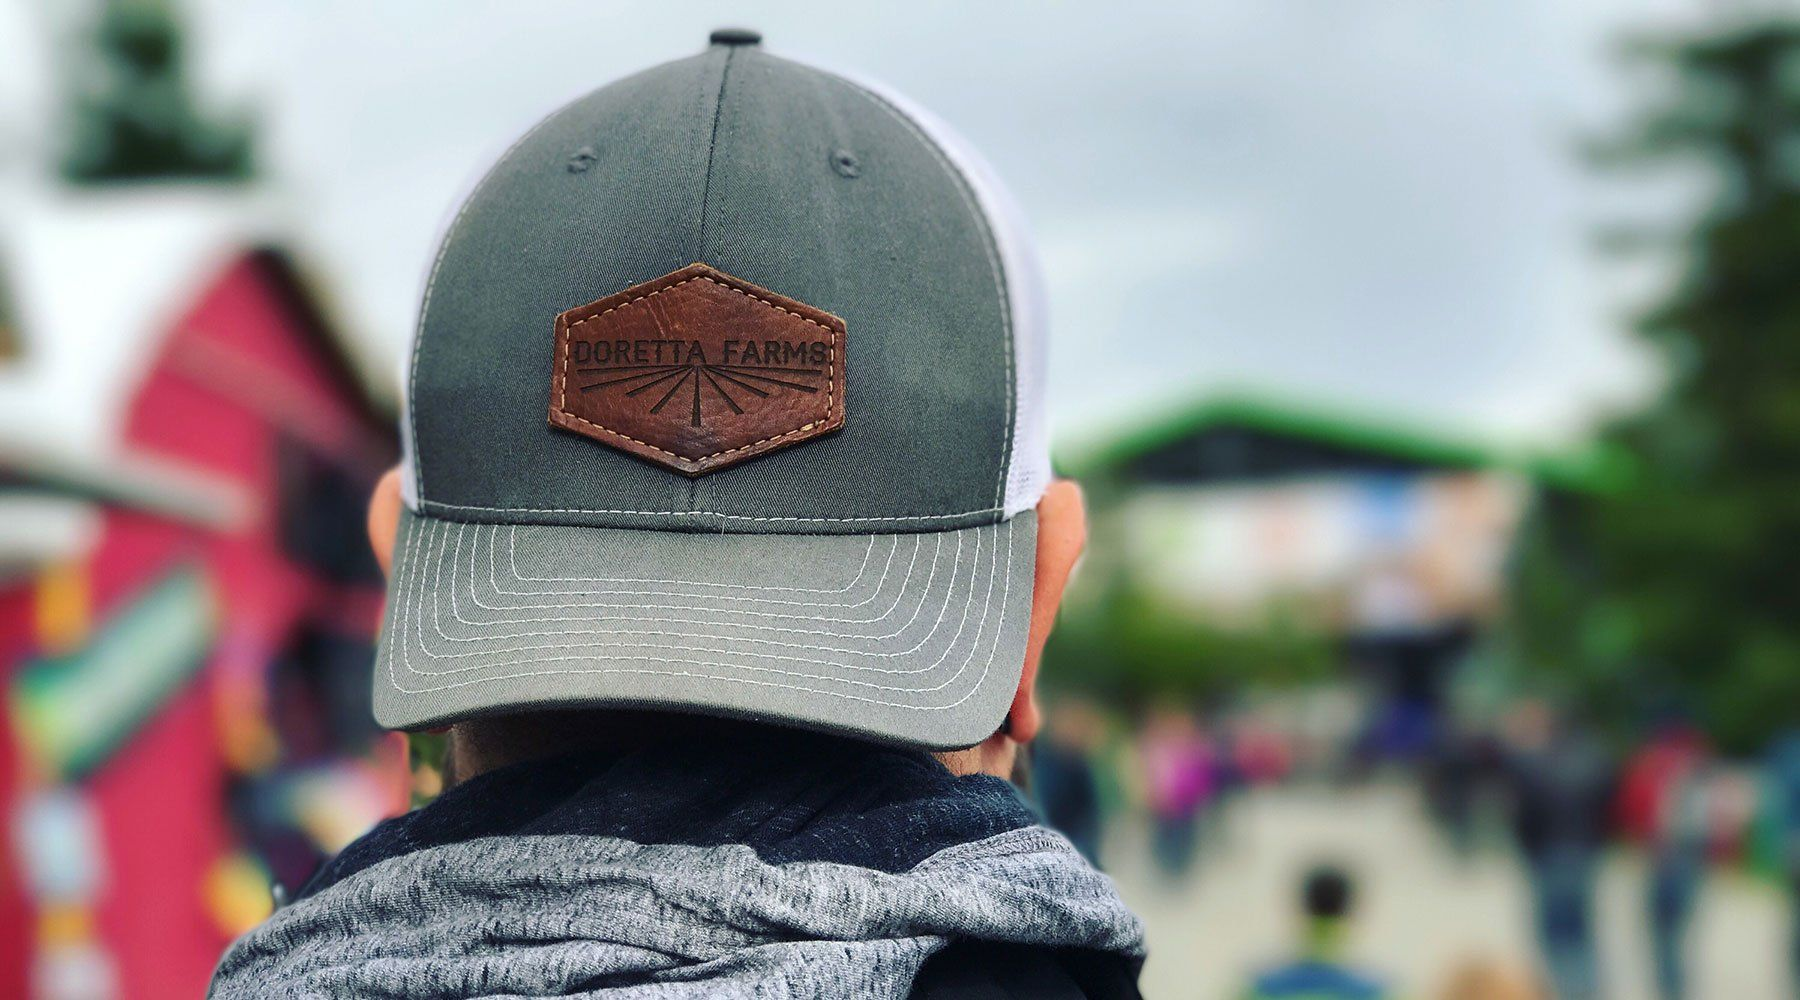 f97babb0547c1 Custom Leather Patch Hats crafted with the finest of full grain American  Leathers. We put your logo onto our Richardson 112 Trucker Style hats.